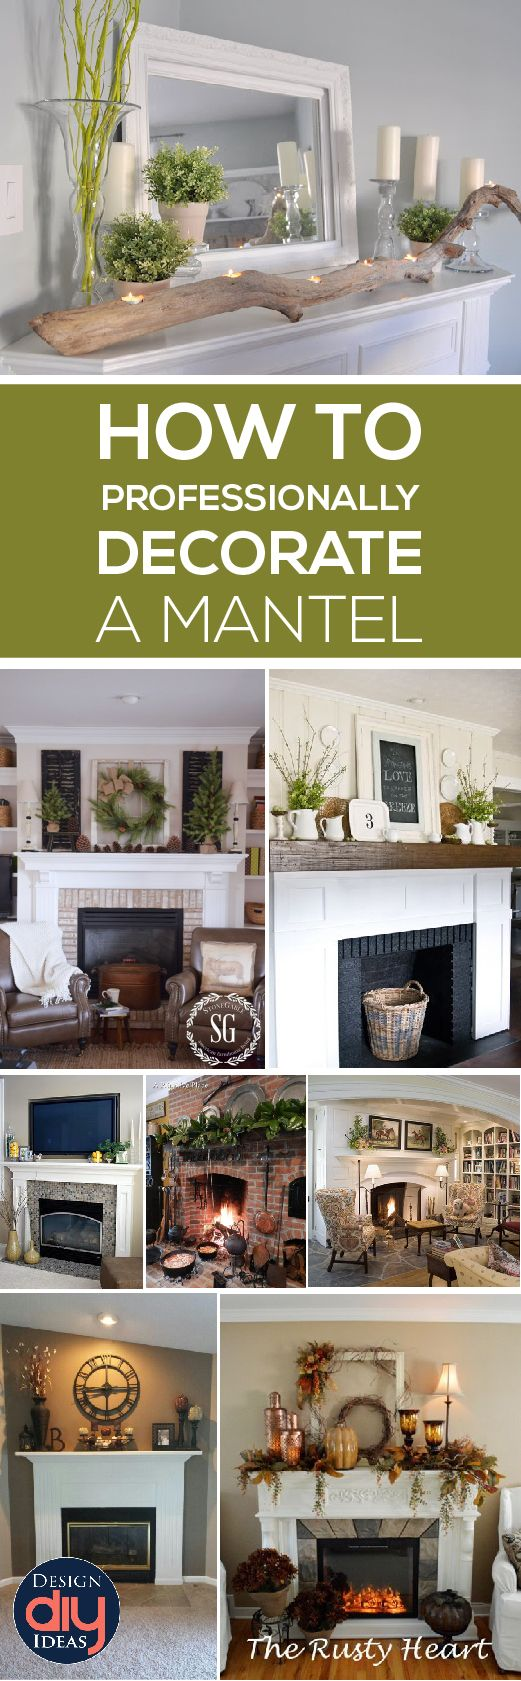 How to Decorate a Mantel | Mantels, Twine and Master bedroom